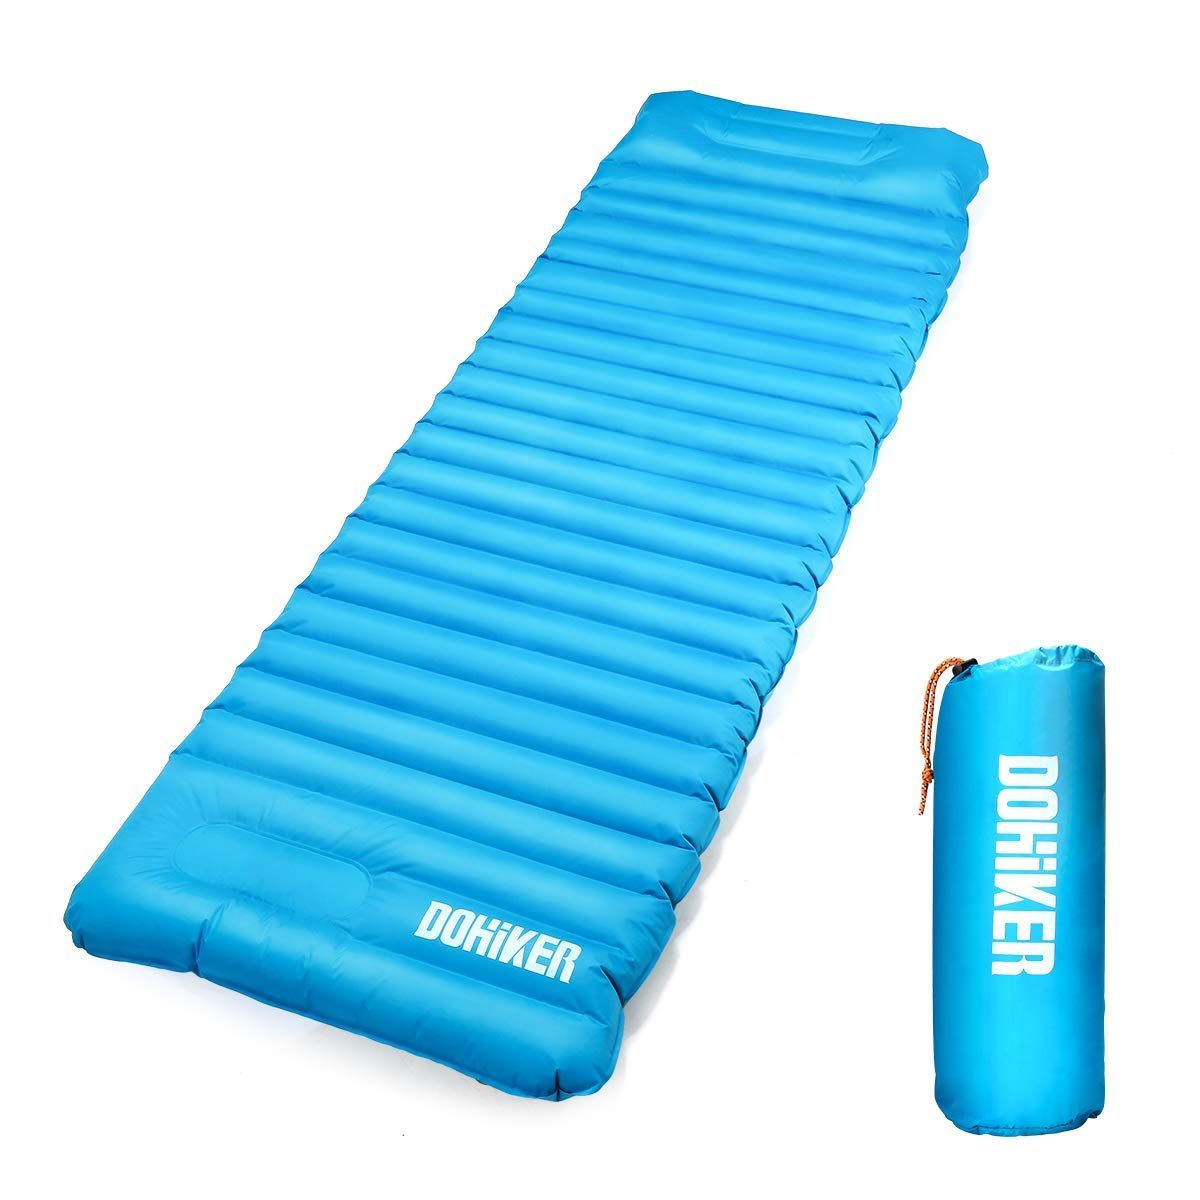 Ryaco Ultralight Sleeping Mat Camping Mattress Inflatable Sleeping Pad with